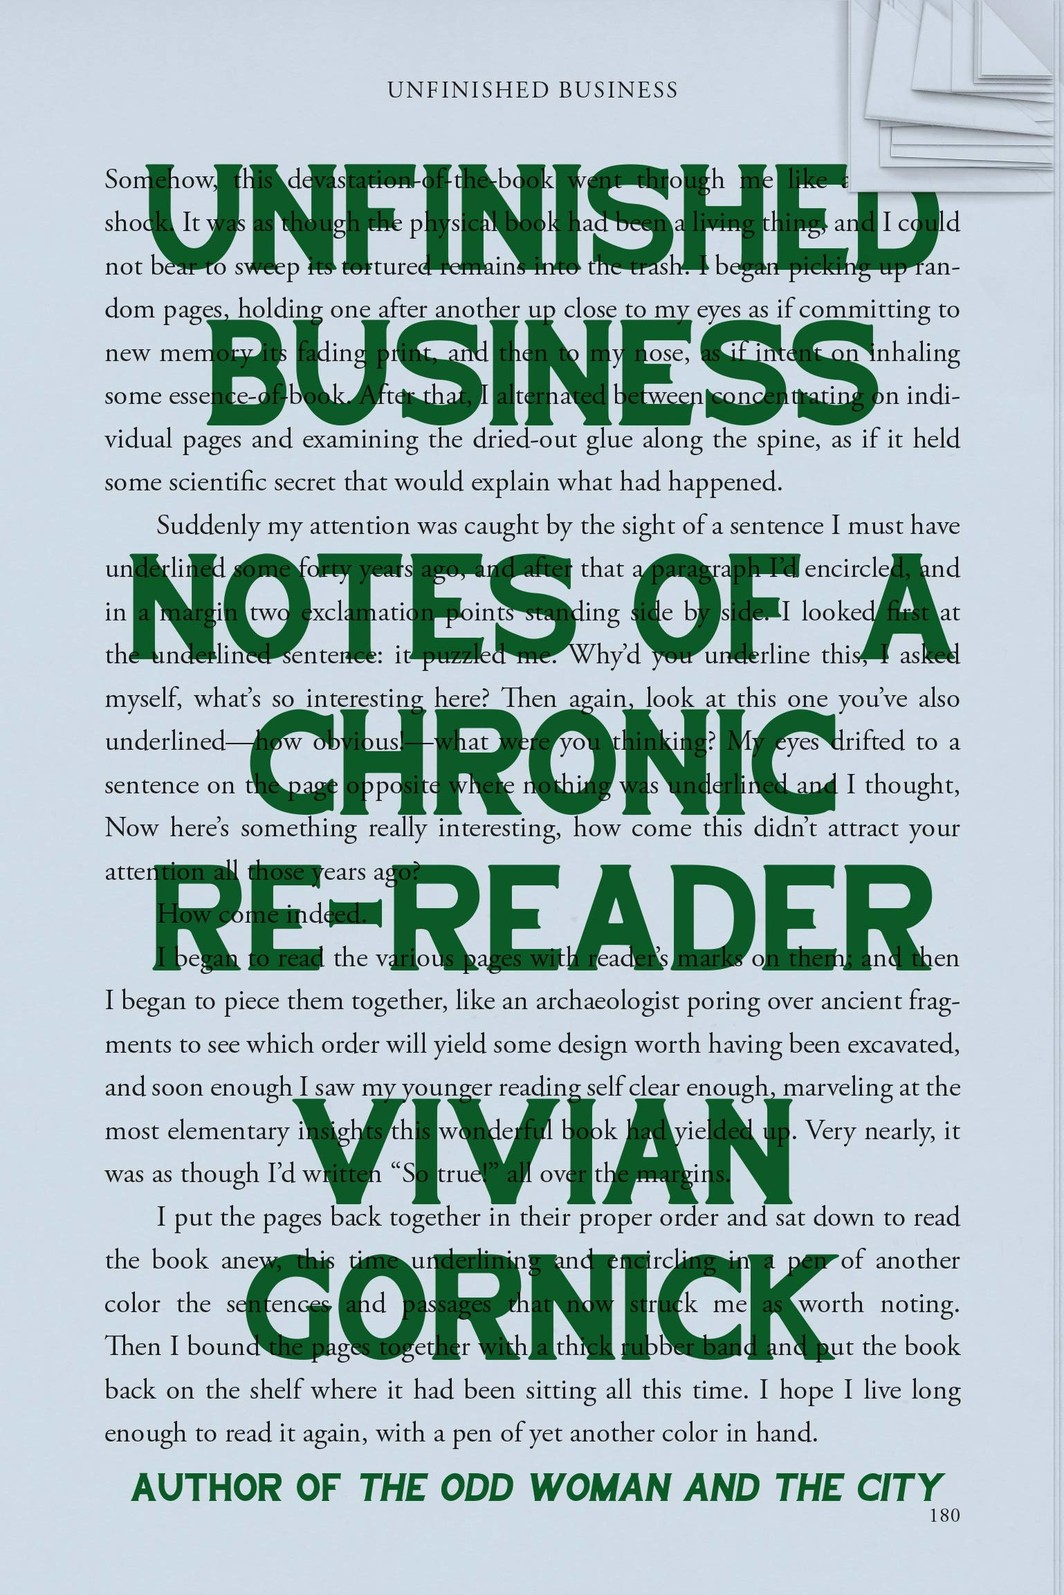 The cover of Unfinished Business: Notes of a Chronic Re-reader